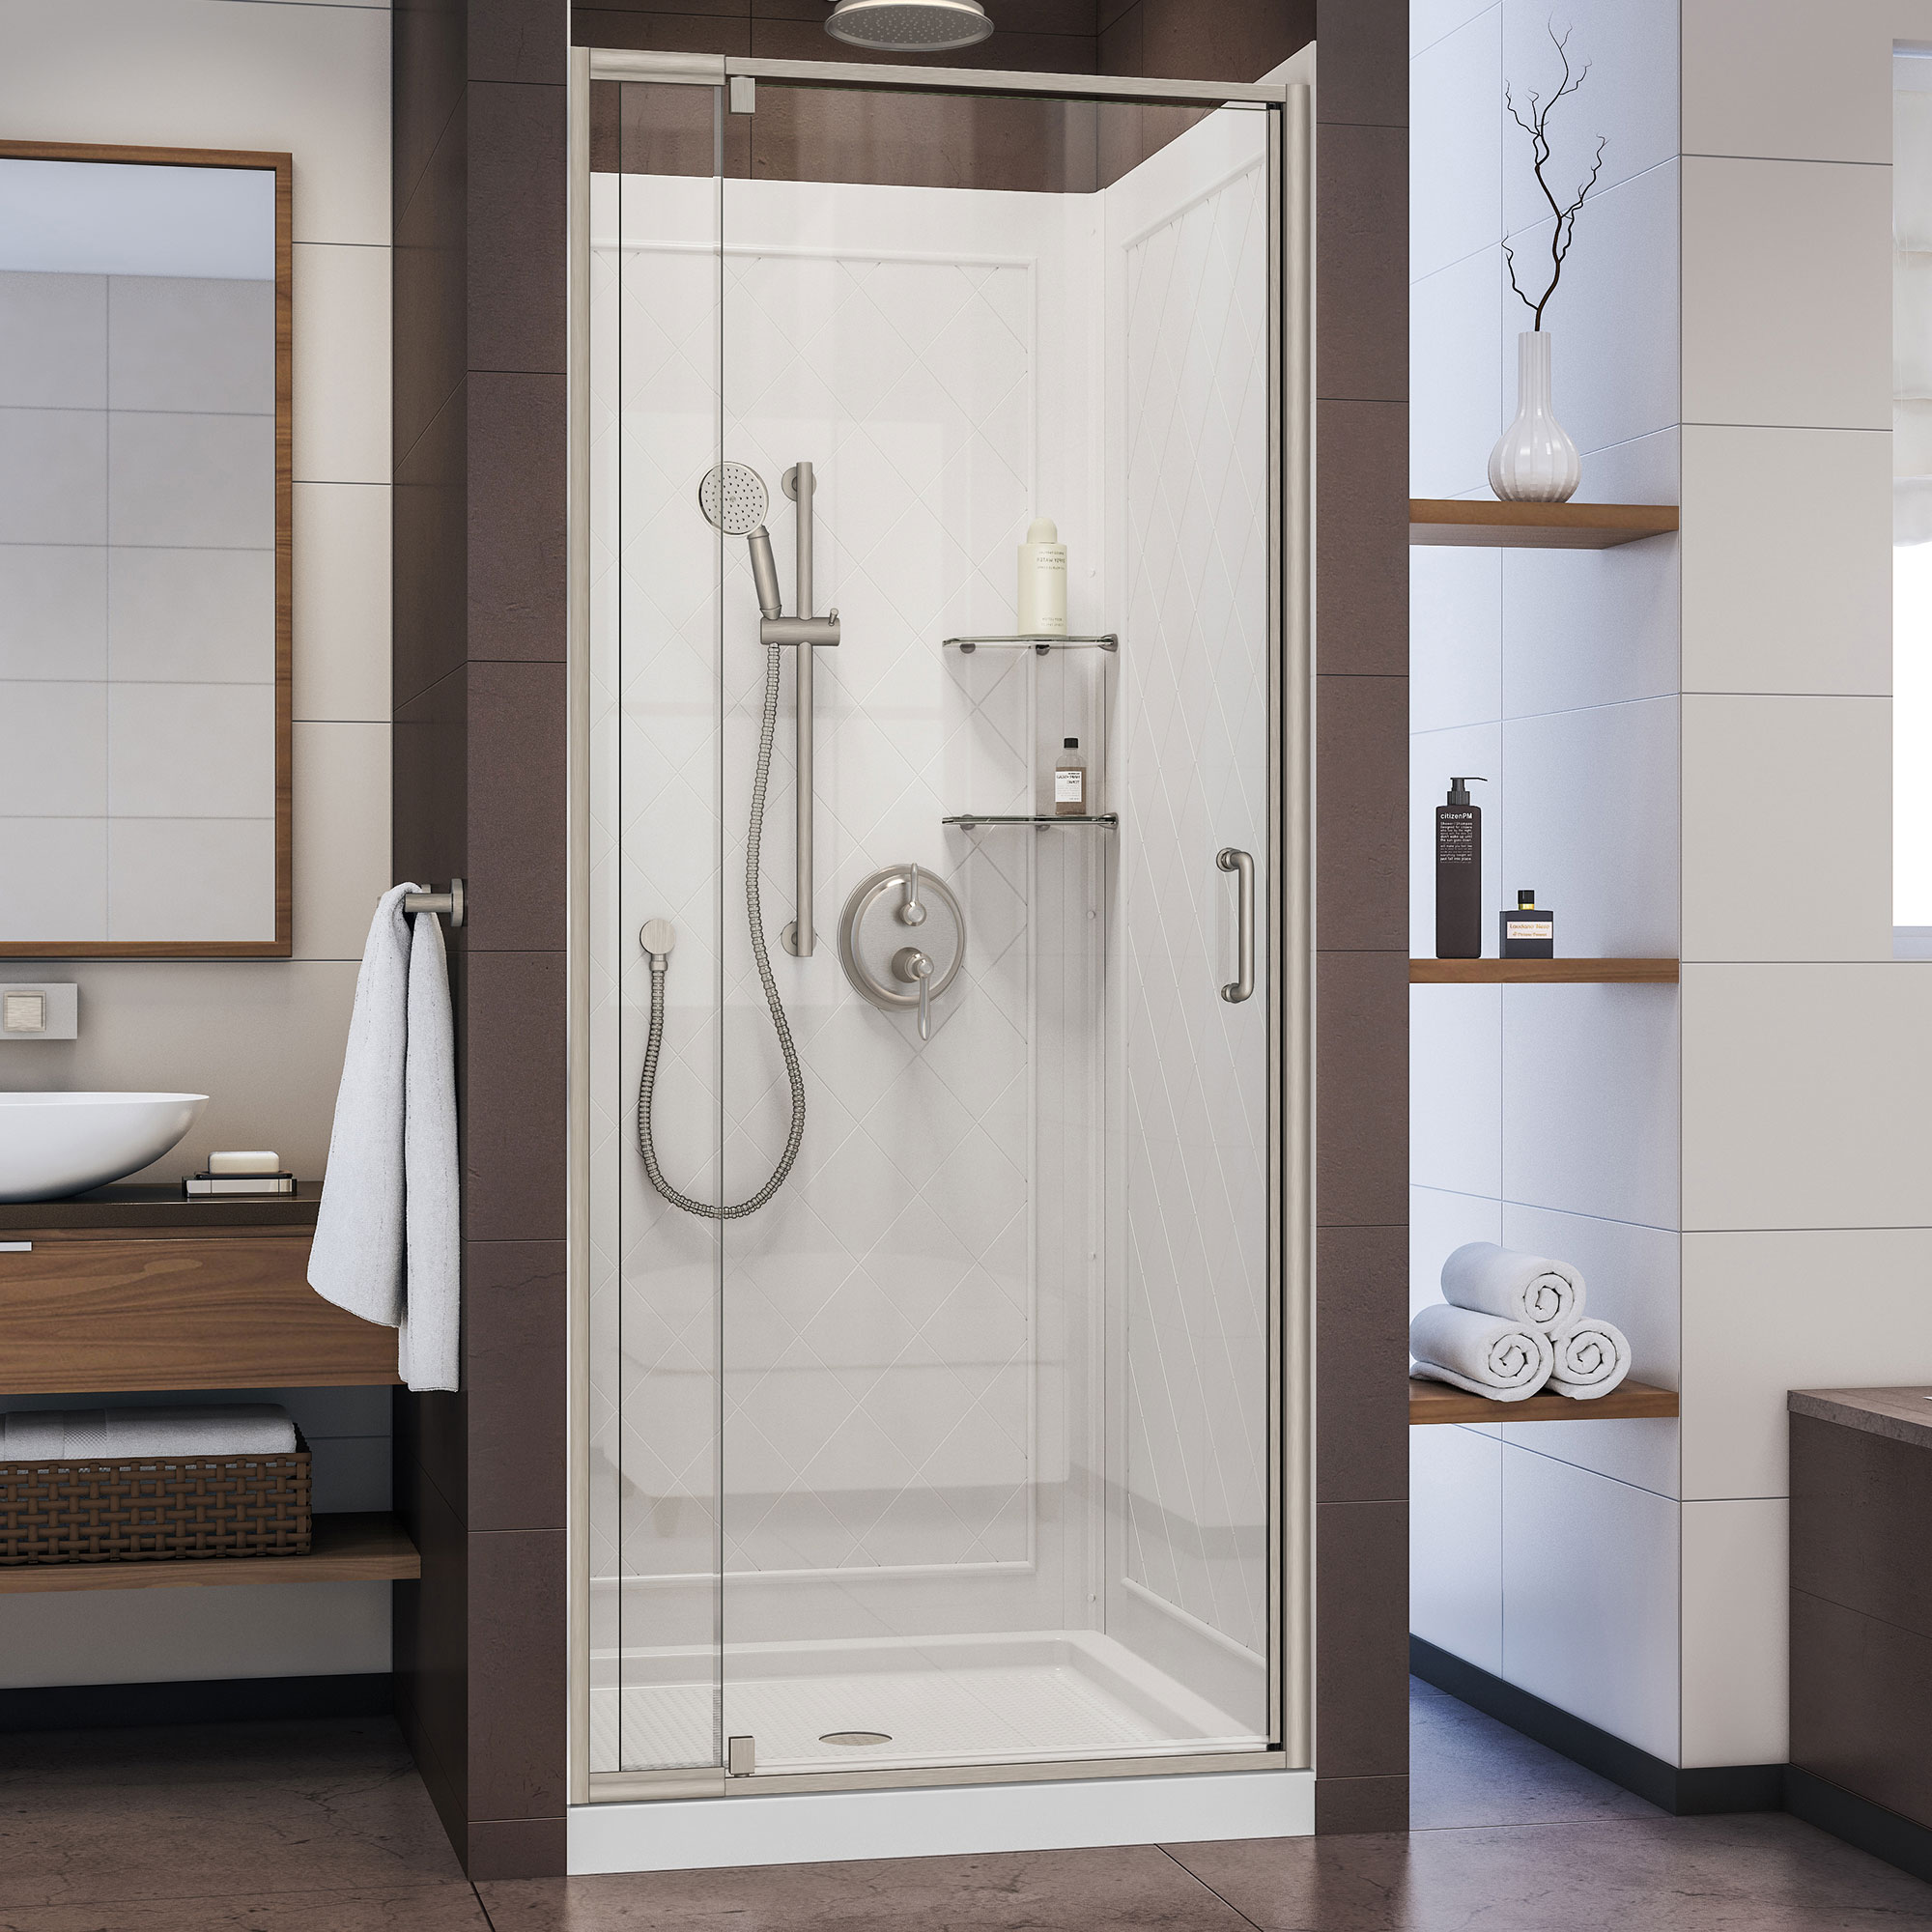 Dreamline Flex 32 In D X 32 In W X 76 3 4 In H Semi Frameless Shower Door In Chrome With White Base And Backwalls